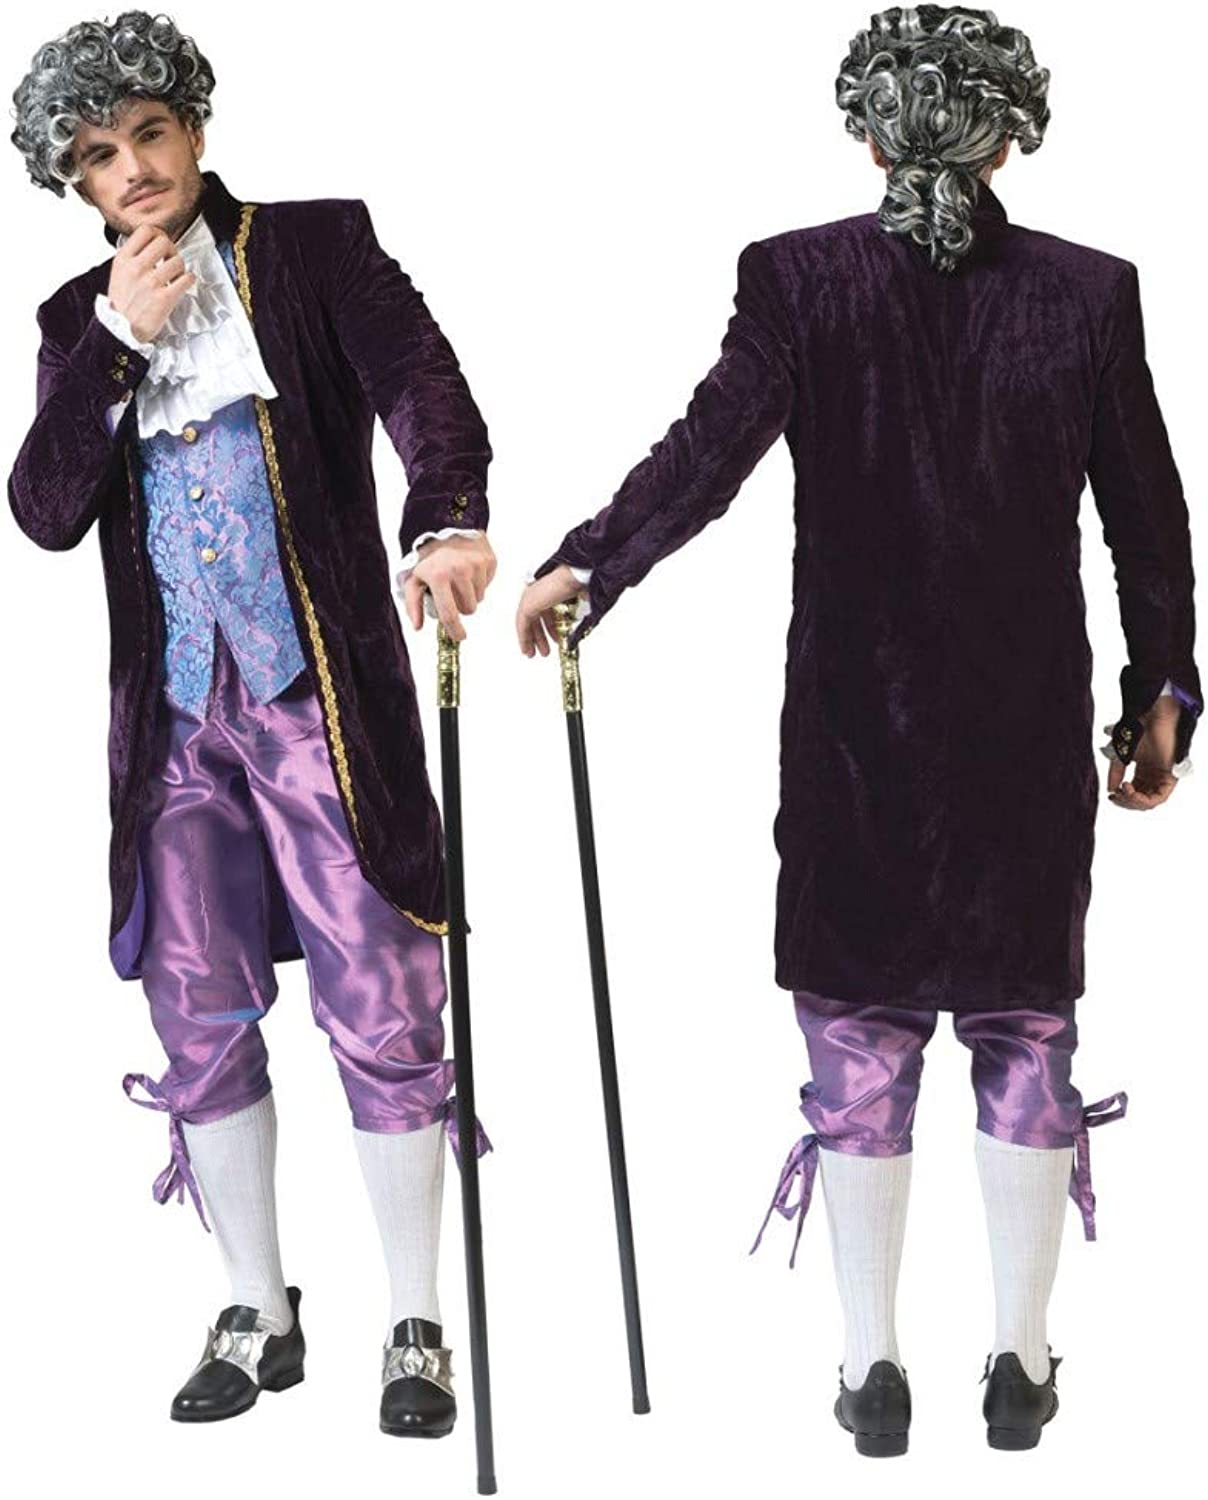 Funny Fashion Costume nobleman size 48 50 (UK 38 40) Nobleman Clive tails with vest purple pants Jabot Baroque